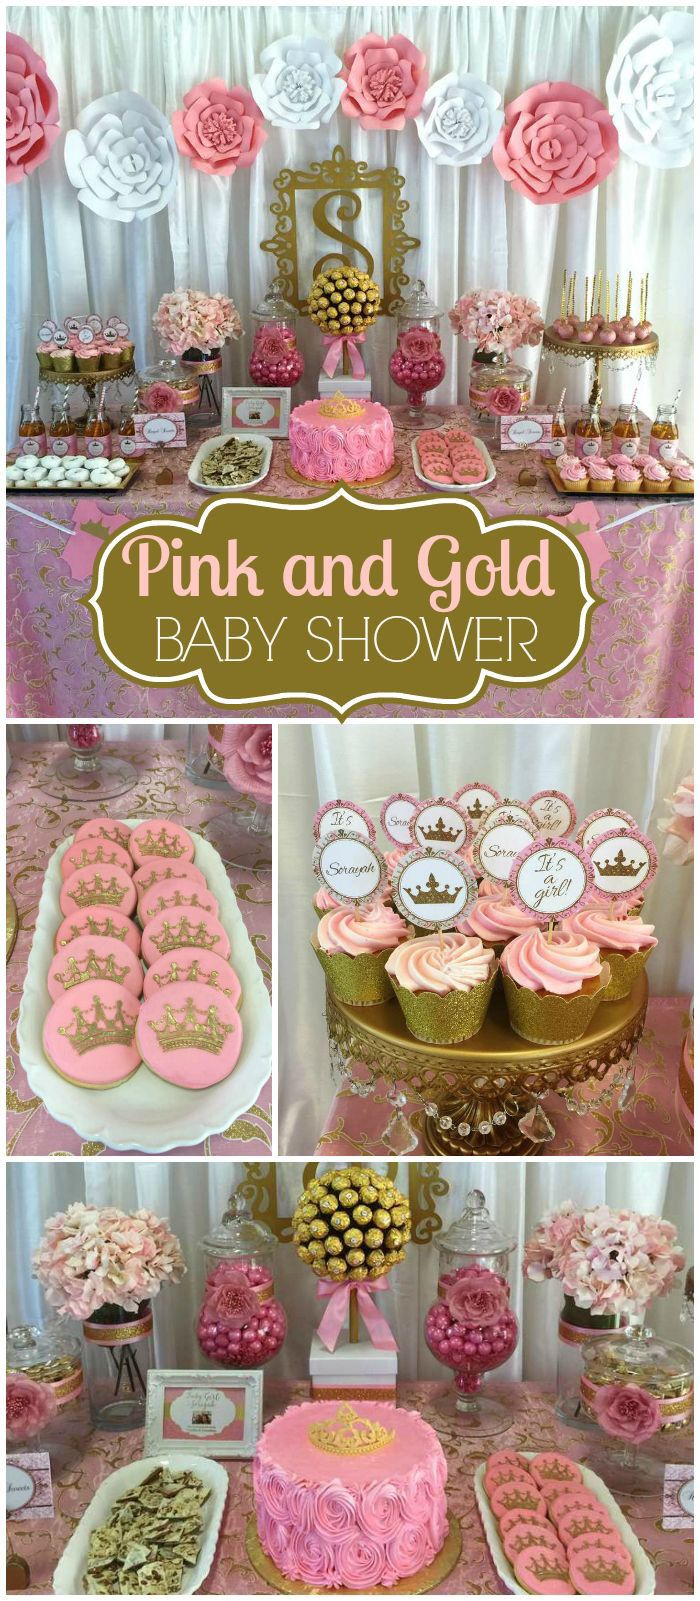 Pin By Fidelvia Garcini On Quince Pinterest Baby Shower Gold